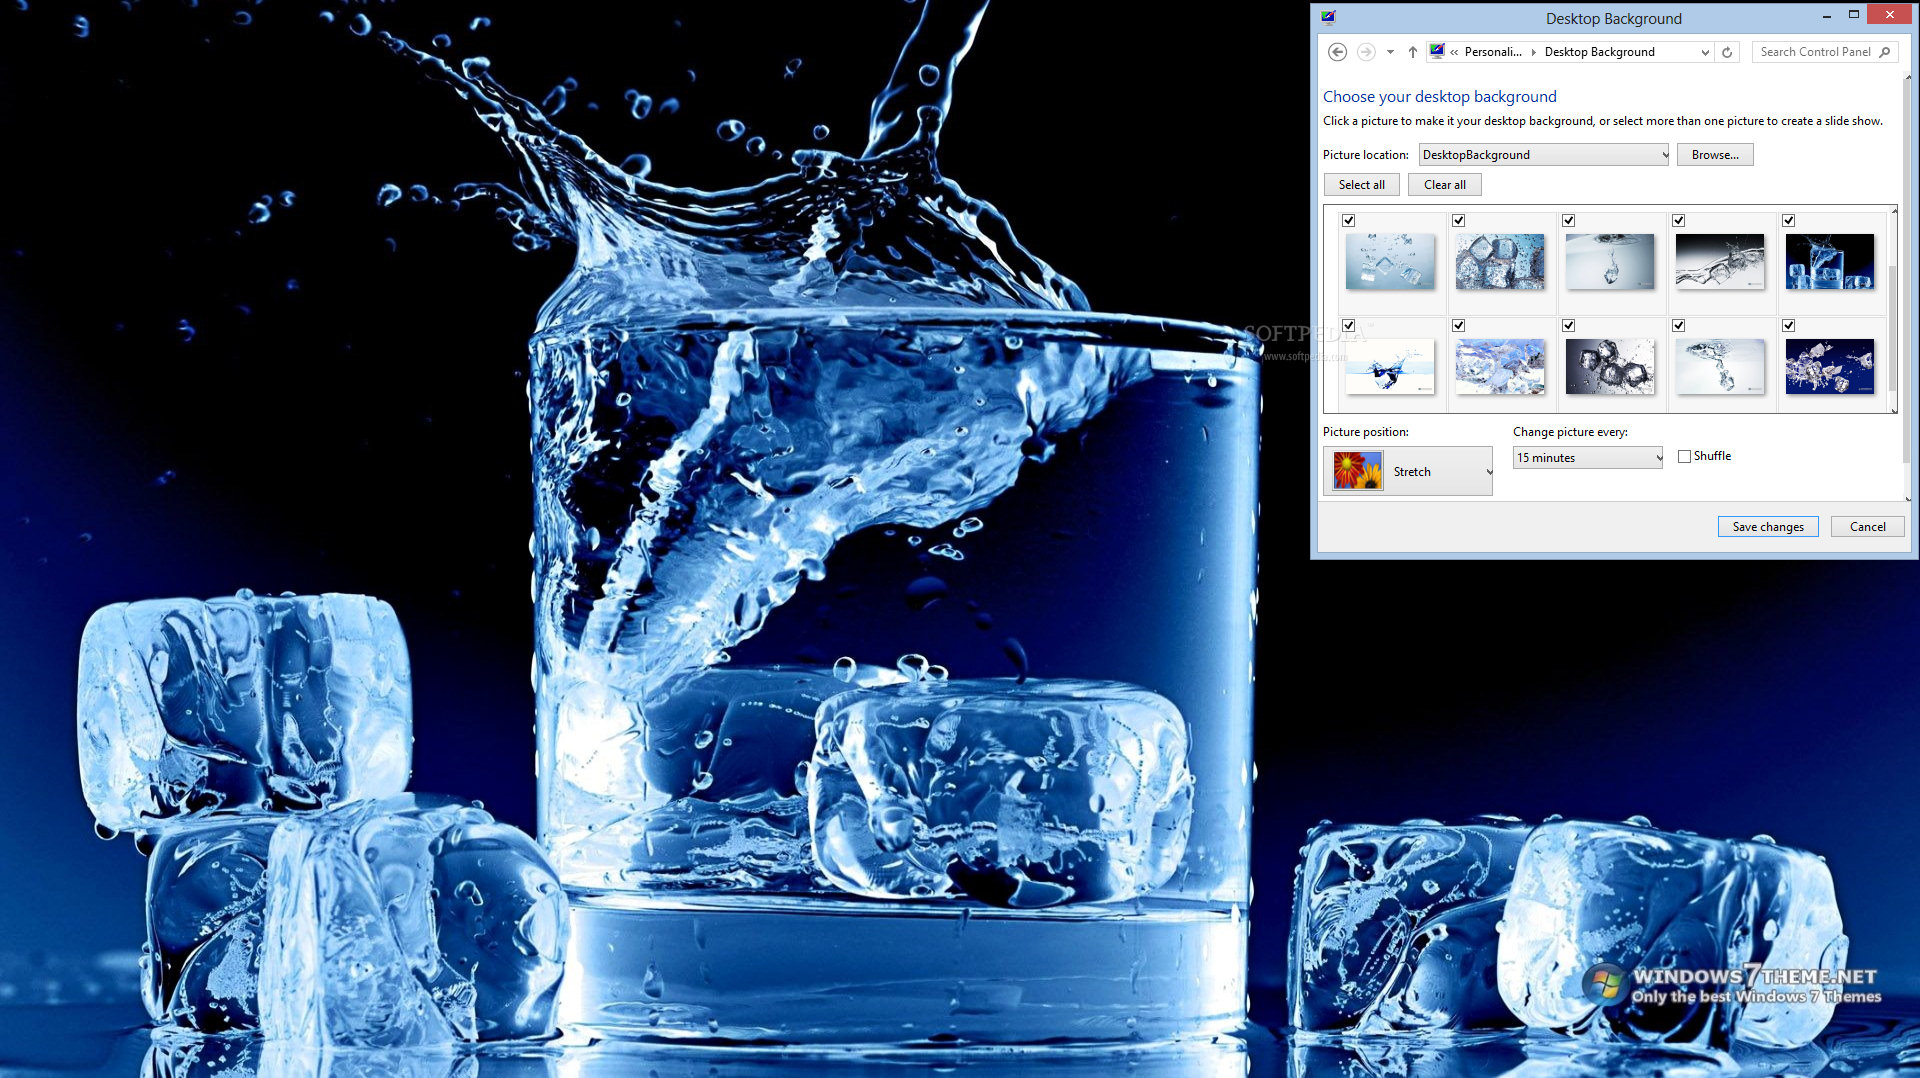 ice in water windows 7 theme 1